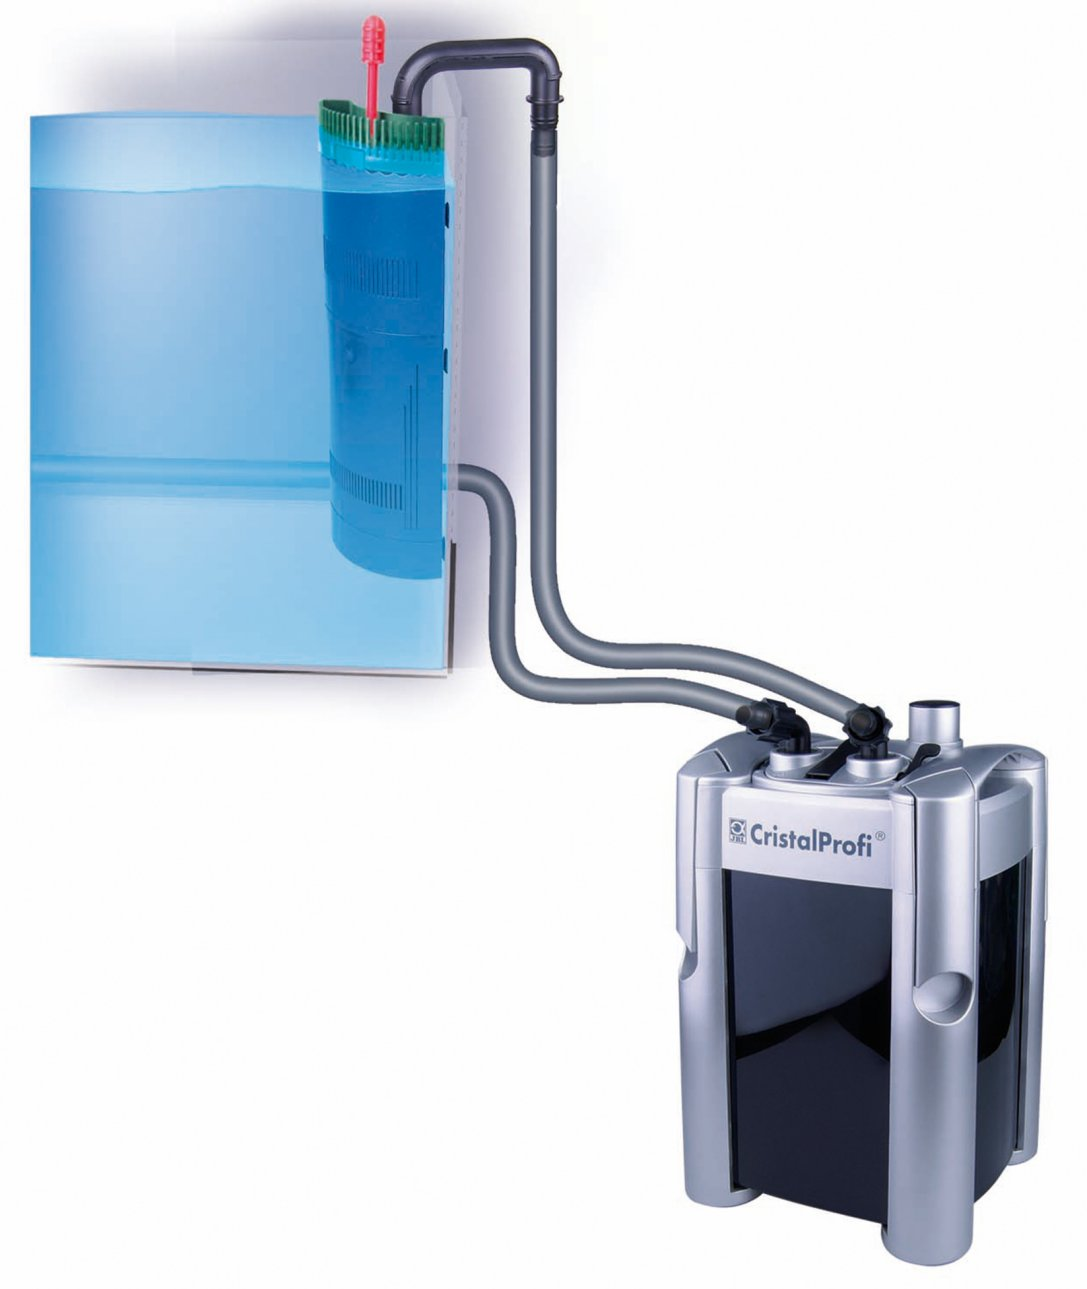 Jbl surface skimmer topclean ii for Jbl aquarium